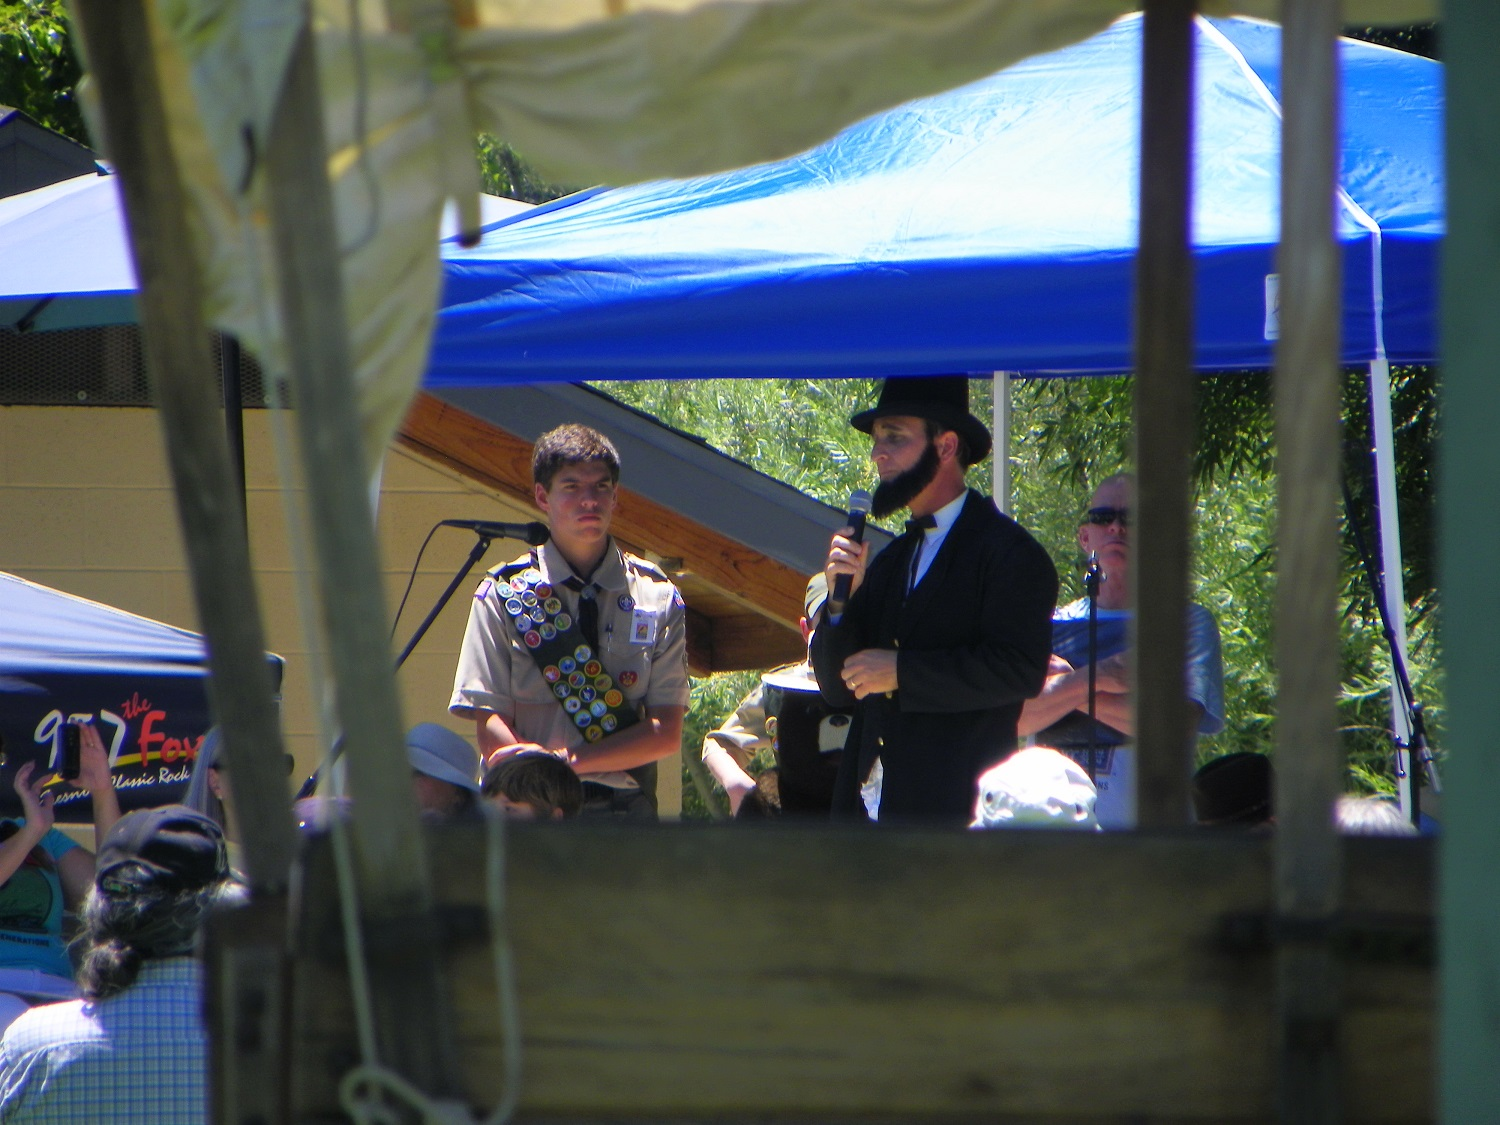 Yos Fest - Peter Maclean and President Lincoln as portrayed by Gary Talley - photo by Kellie Flanagan